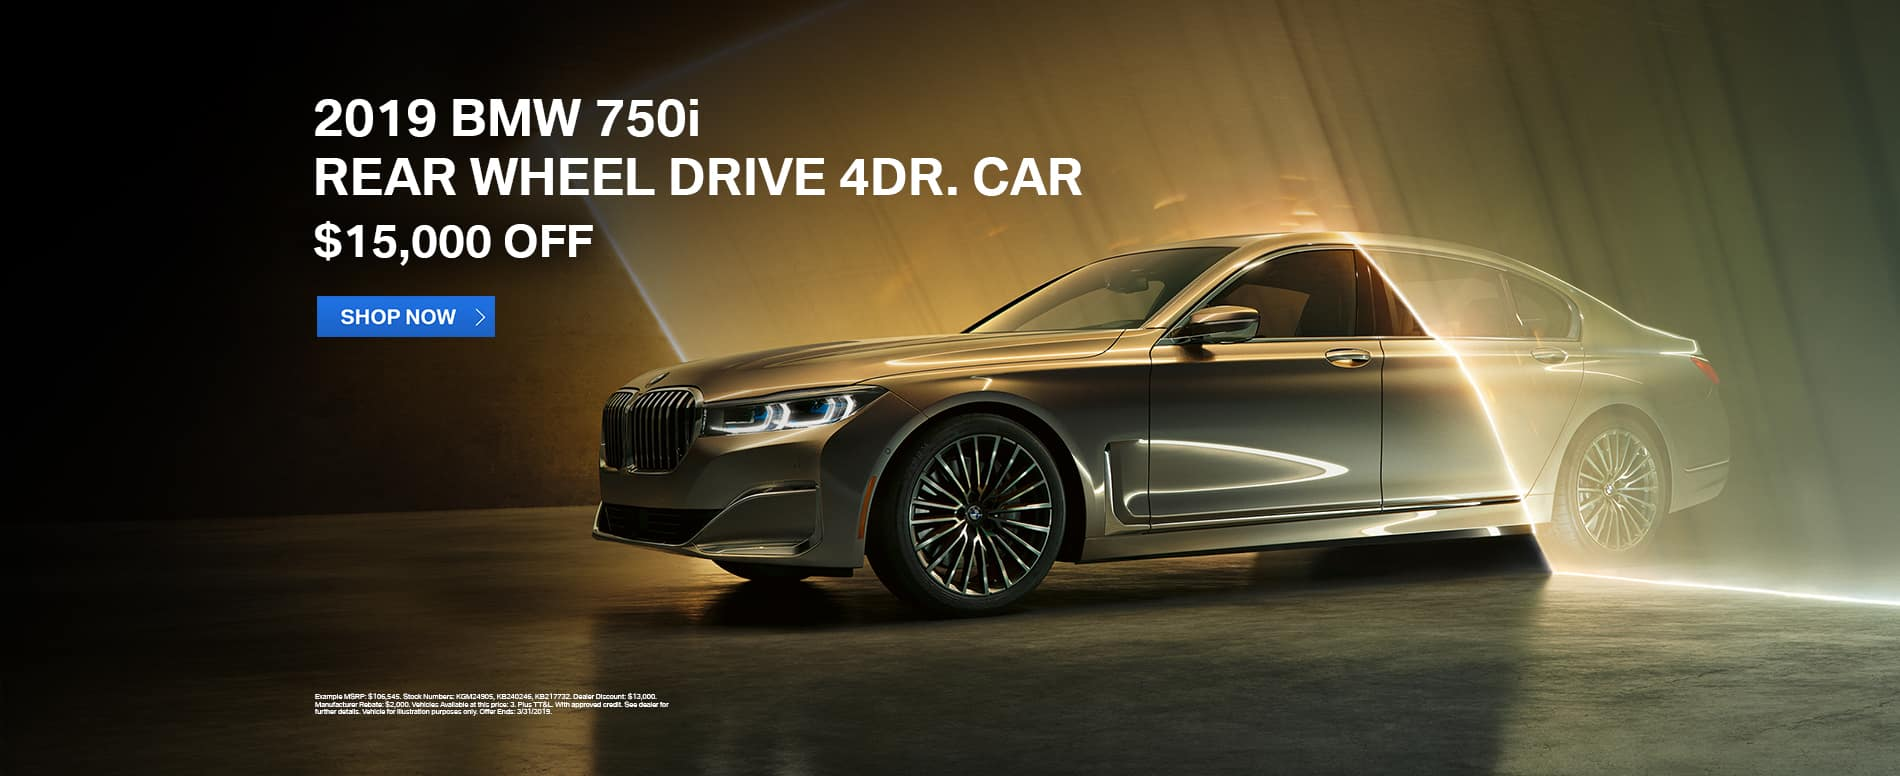 15000-off-bmw-750i-rear-wheel-drive-four-door-tulsa